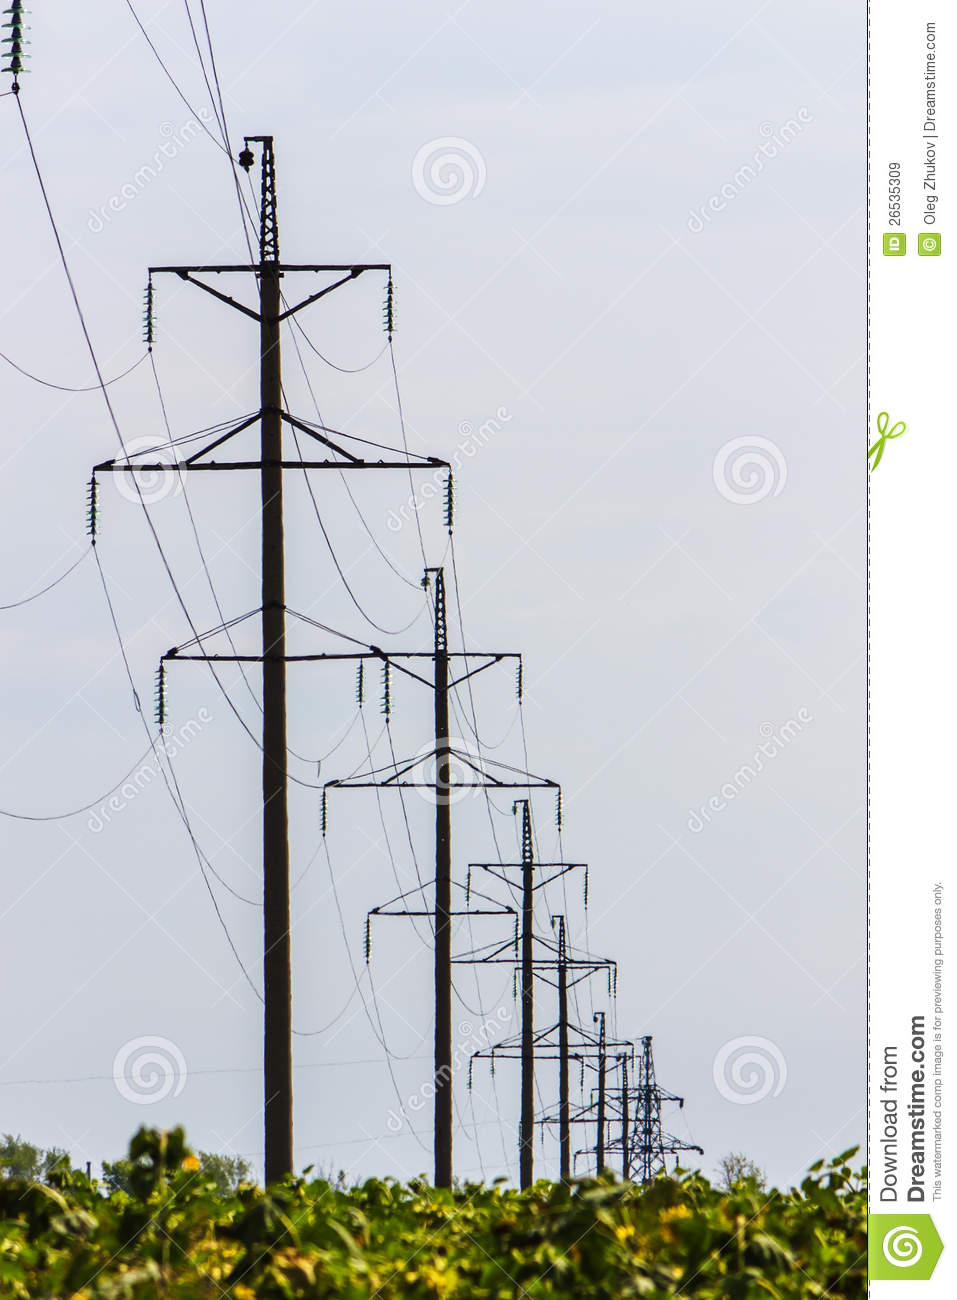 High Voltage Transmission Lines : High voltage wires power transmission lines royalty free